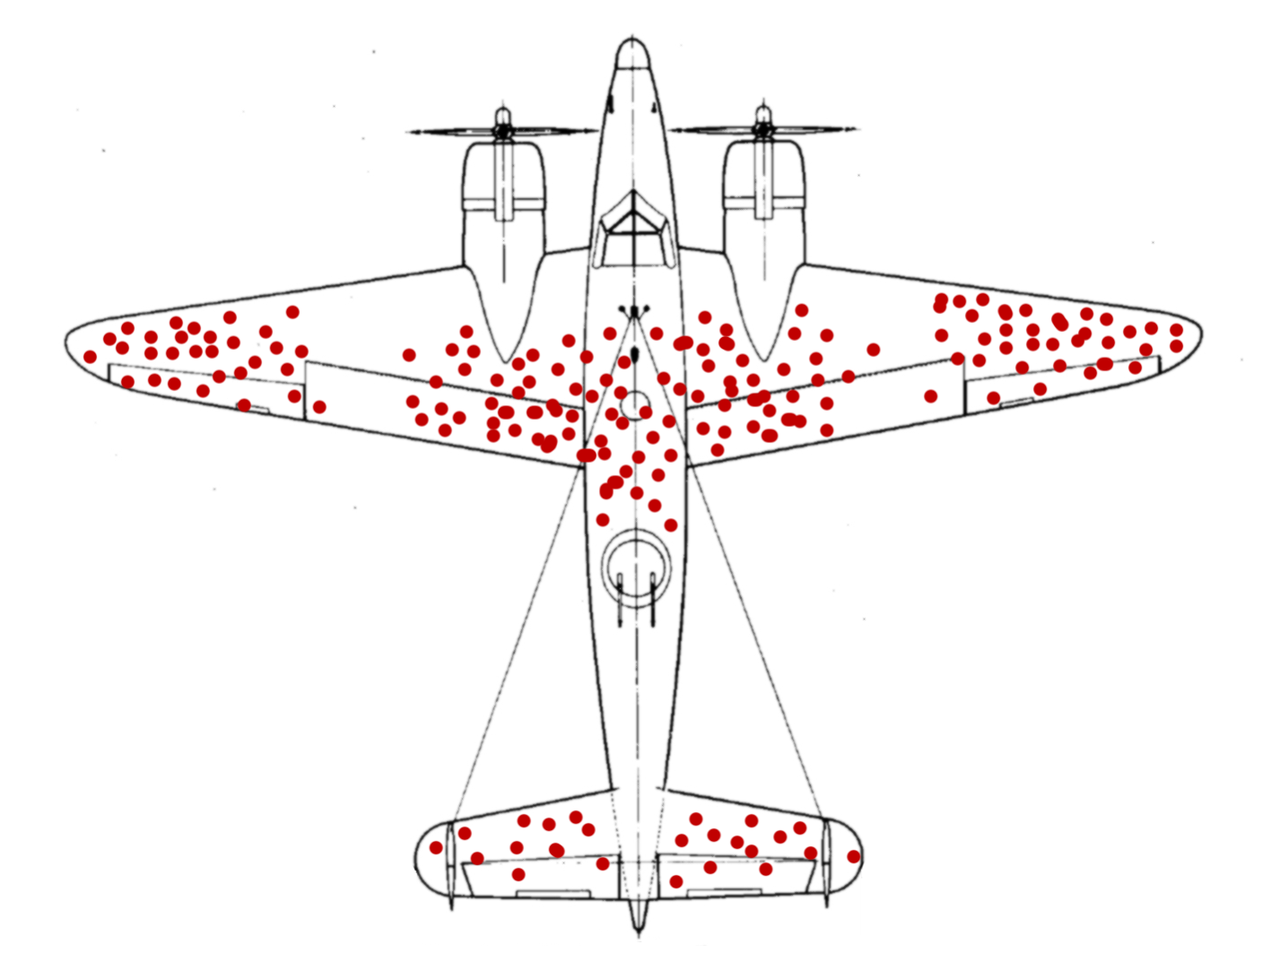 Illustration of hypothetical damage pattern on a WW2 bomber. Created by  McGeddon   CC BY-SA 4.0